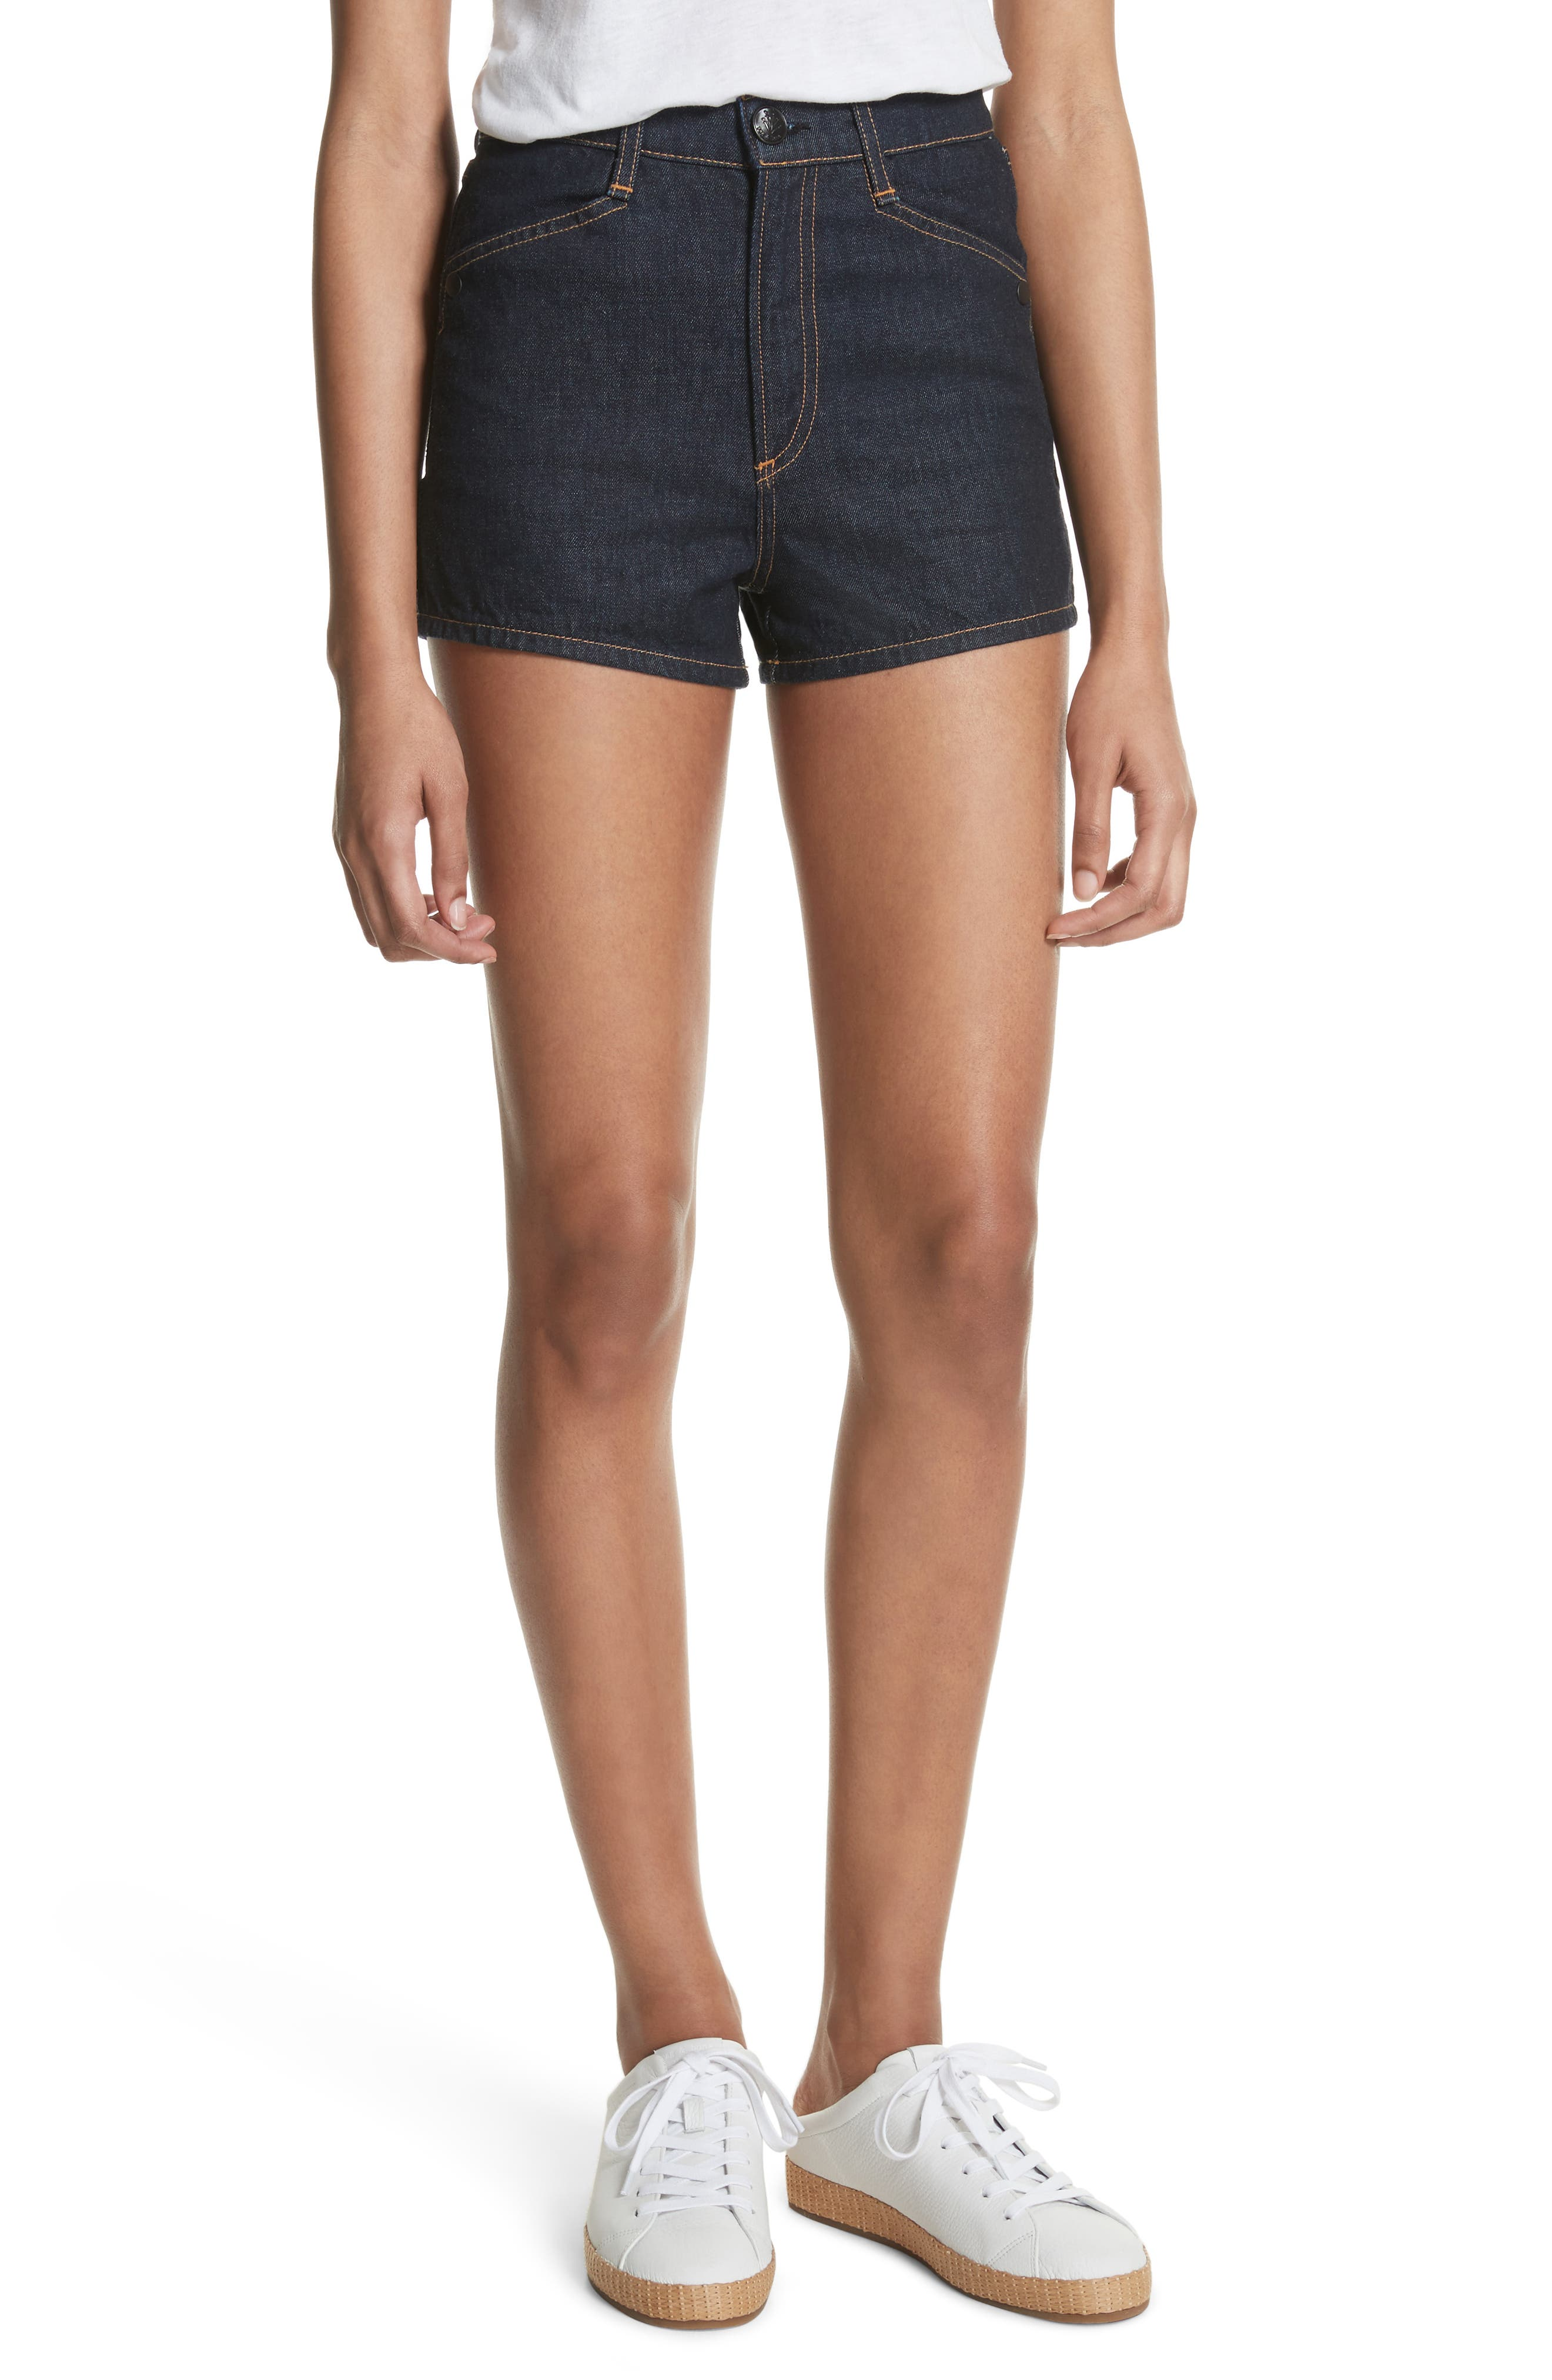 Ellie Denim Shorts,                             Main thumbnail 1, color,                             Indigo